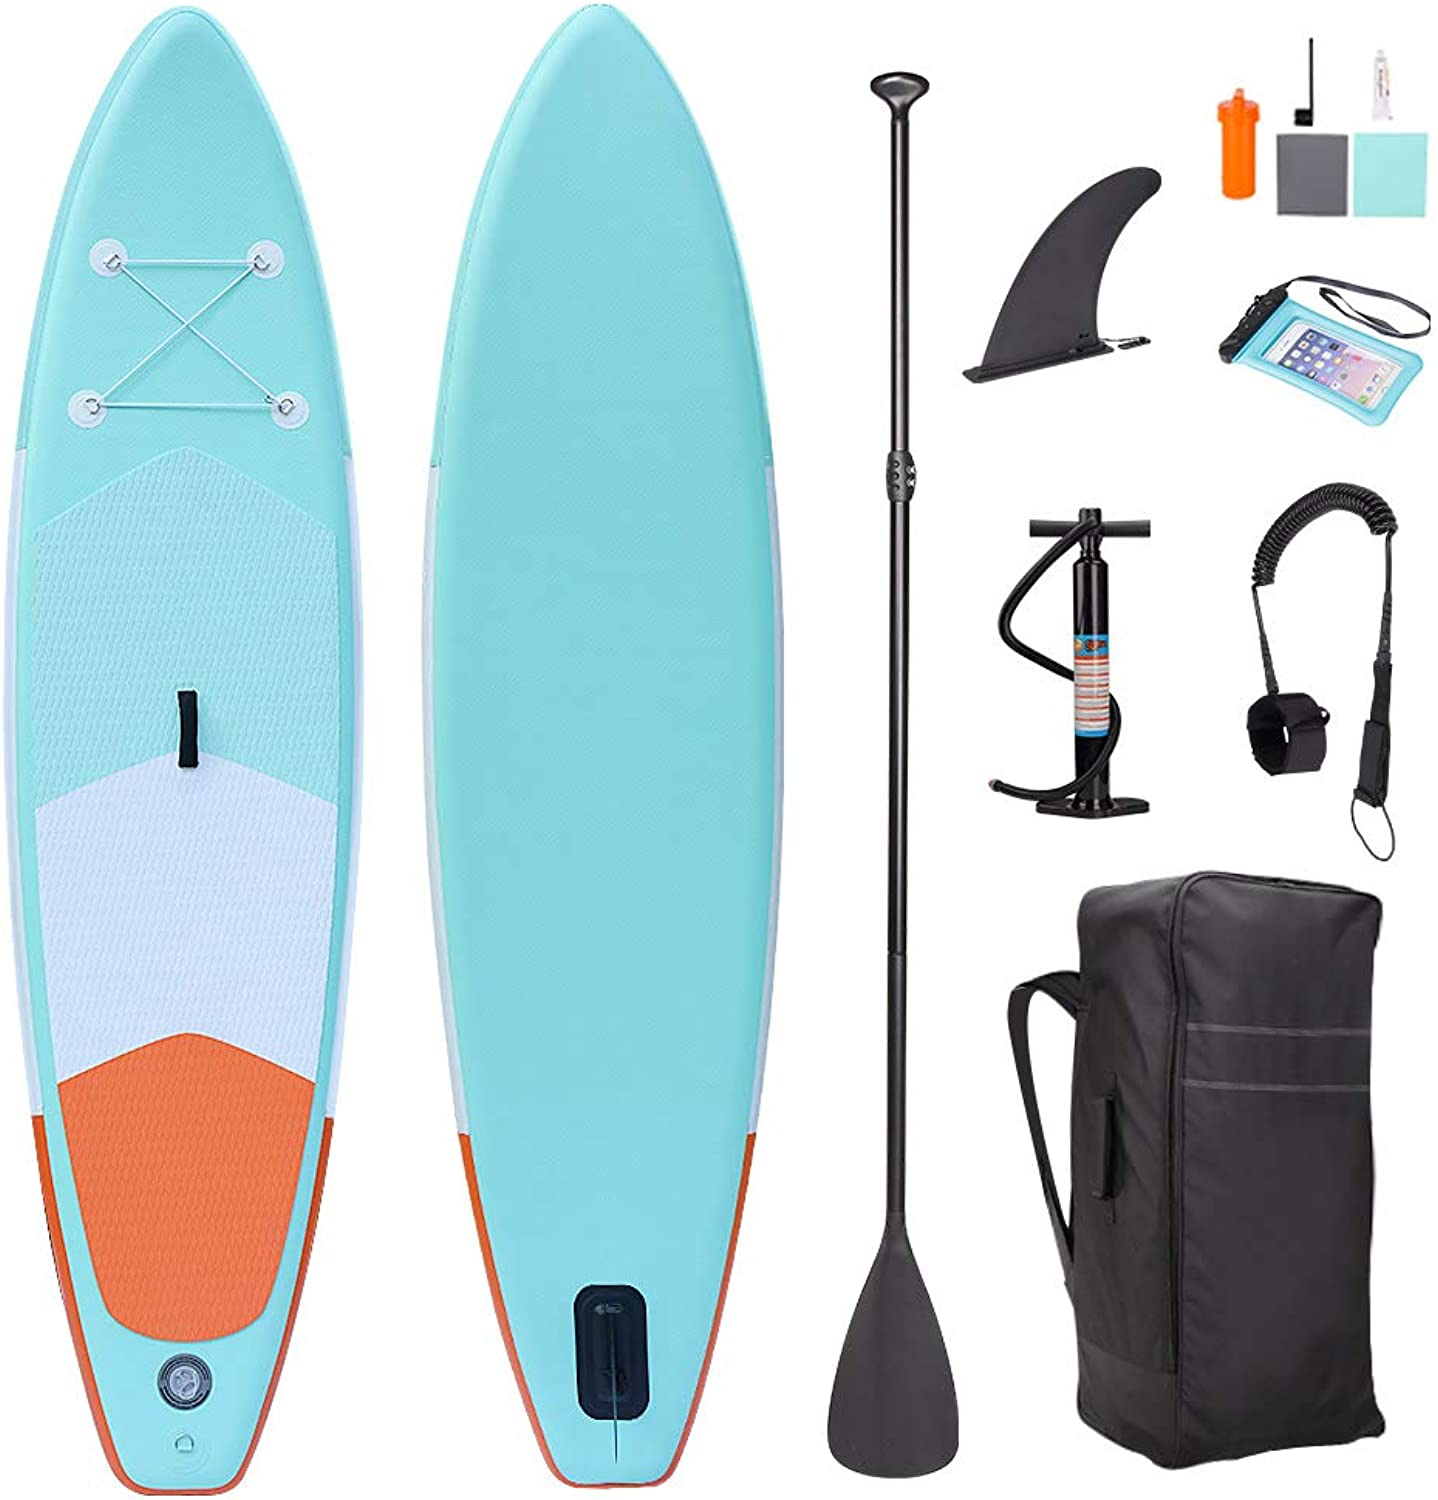 SUP Stand Up Paddle Board 120x30x6inch for All Round Touring with Storage Bag, Paddles, Fin, Leg Leash, Air Pump,Phone Pouch